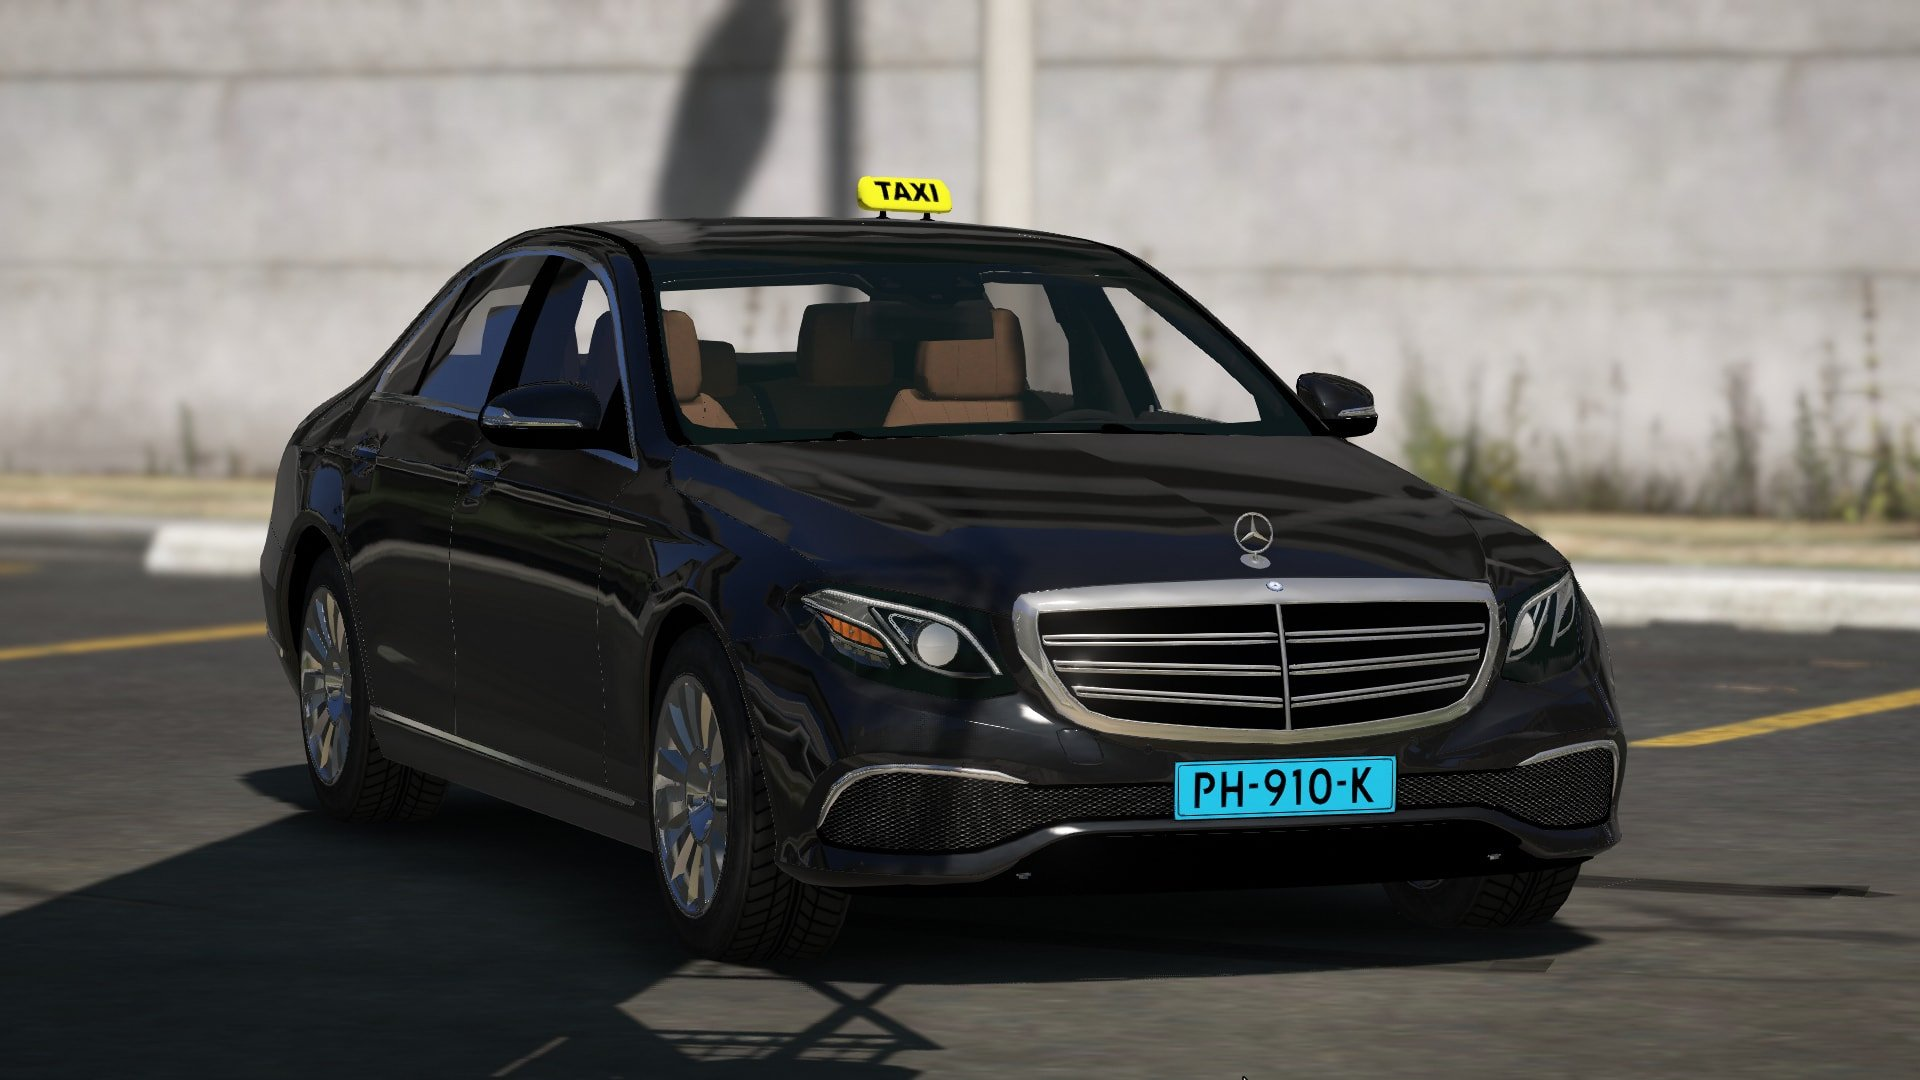 dutch mercedes-benz e-class 2015 taxi - gta5-mods